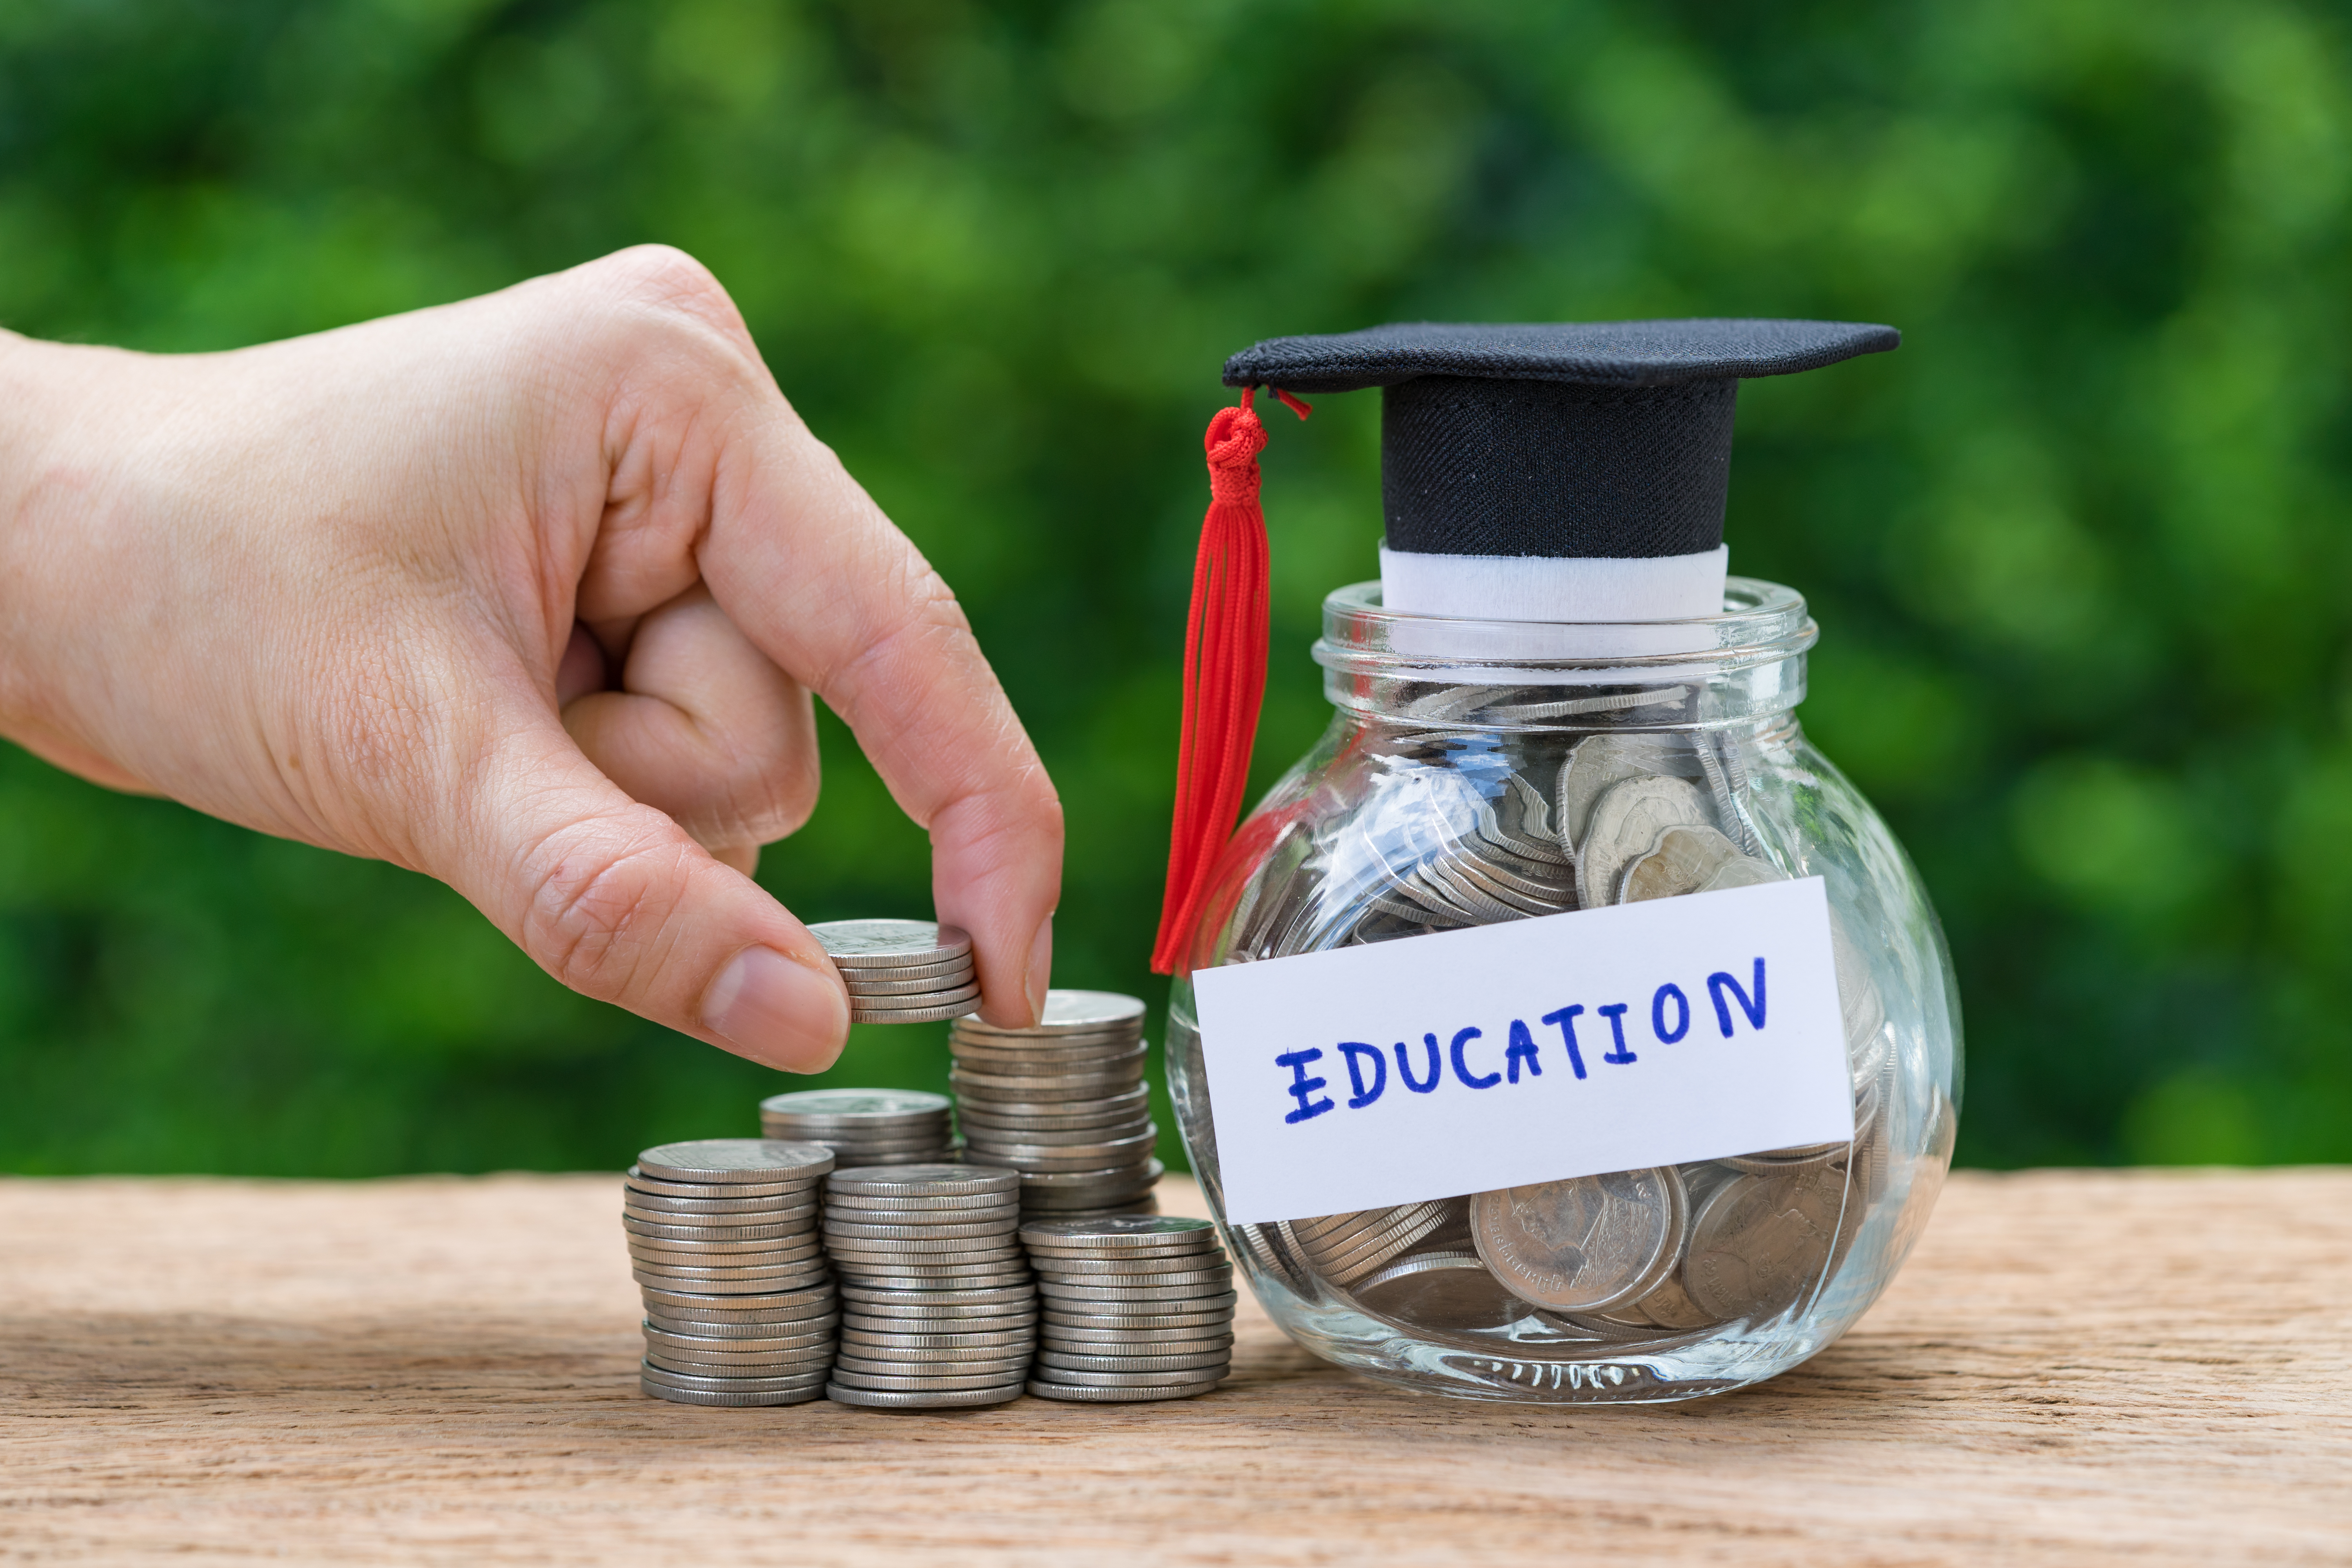 Education Funding – New Application for 529 Plans